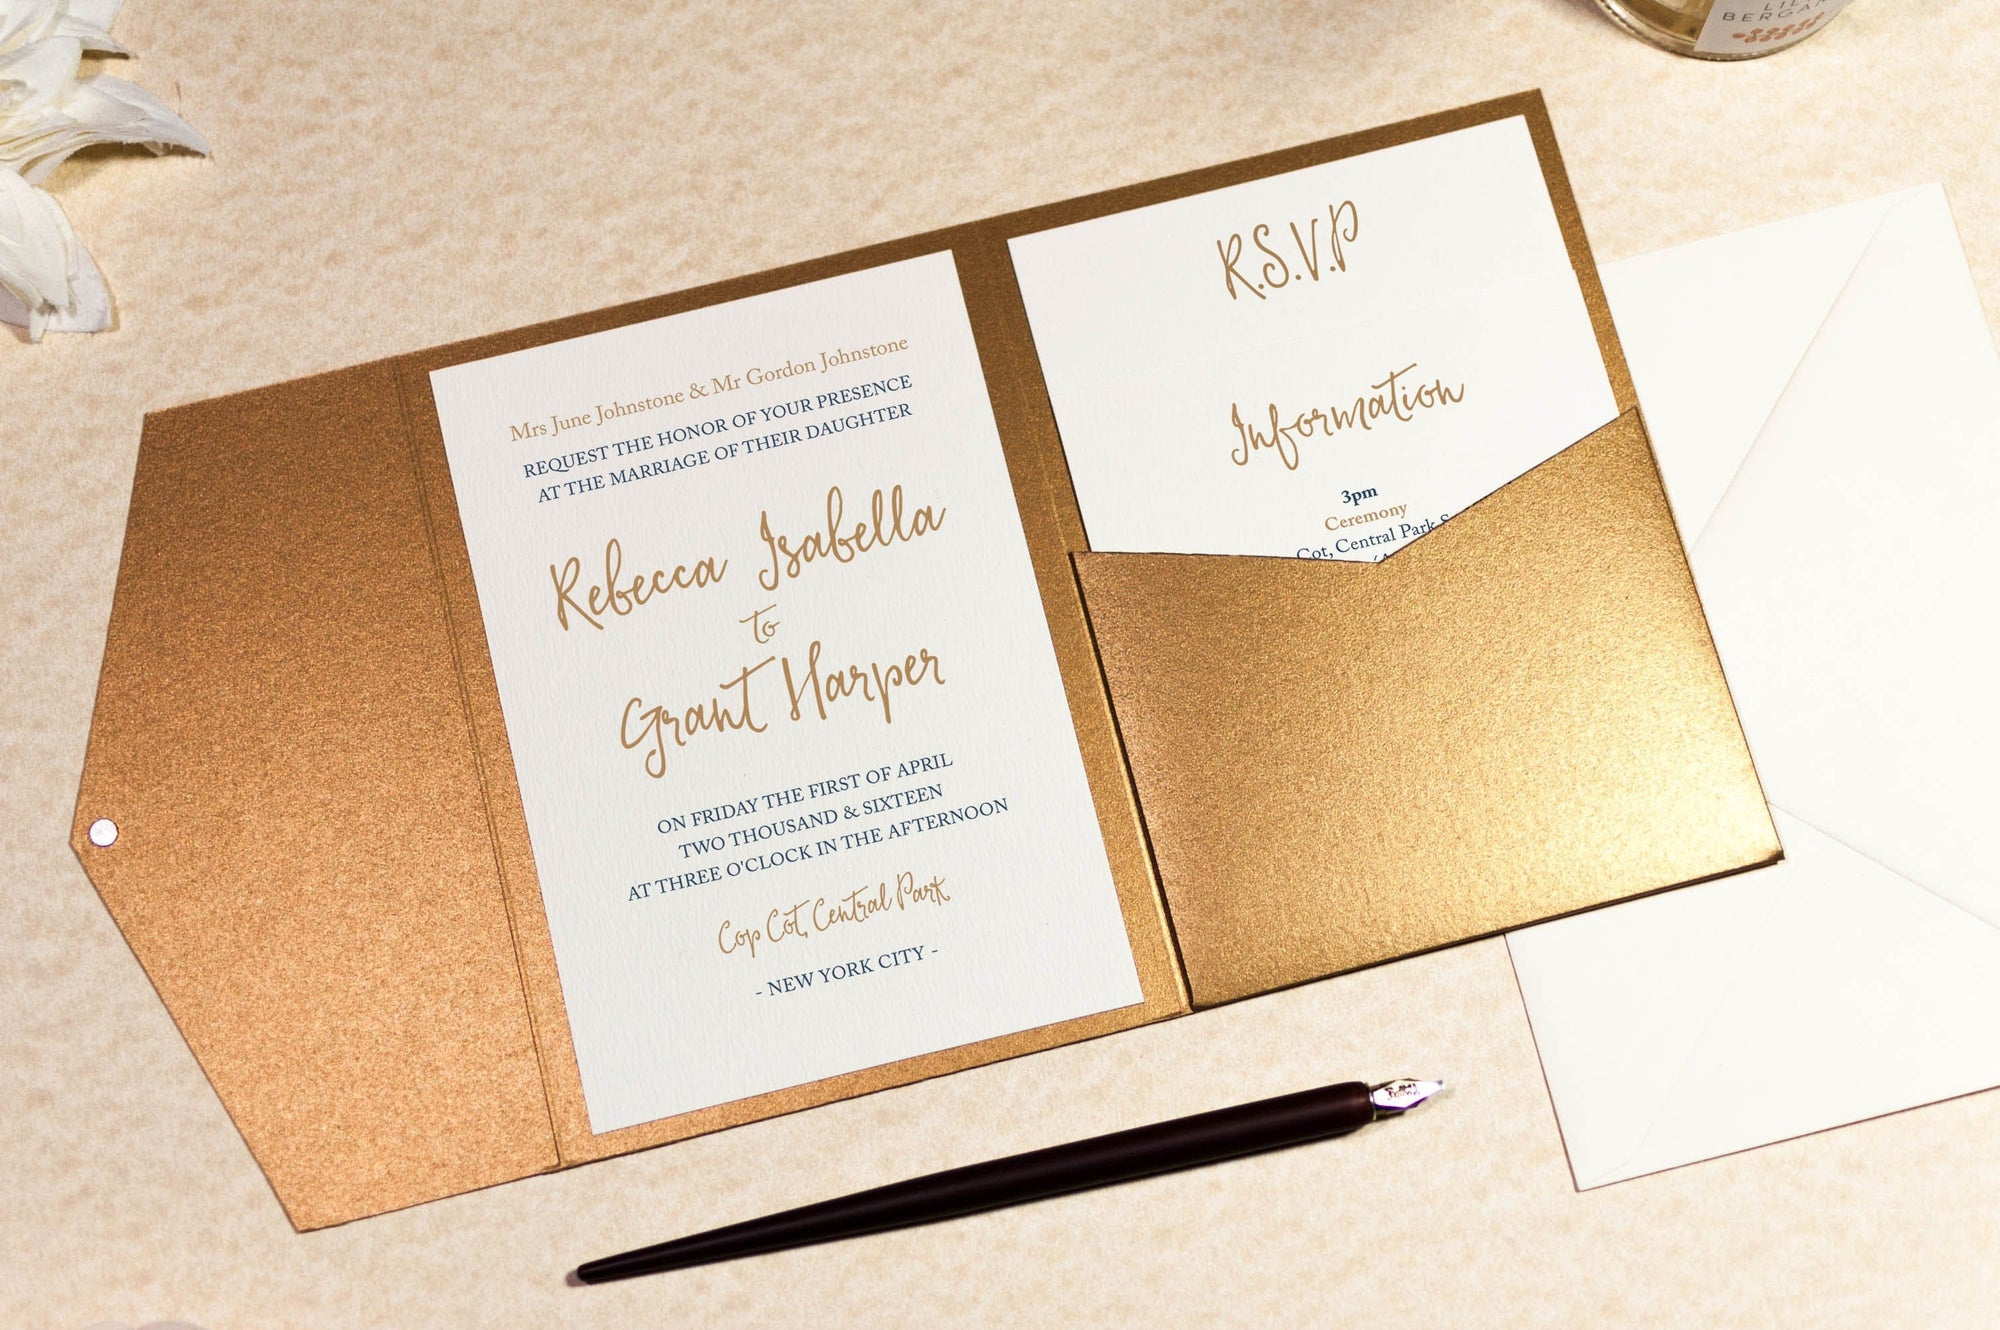 luxuryweddinginvitationsbycombossa Pocketfold Wedding Invitation Calligraphy Wedding Invitation in Antique Gold Pocketfold Wallet